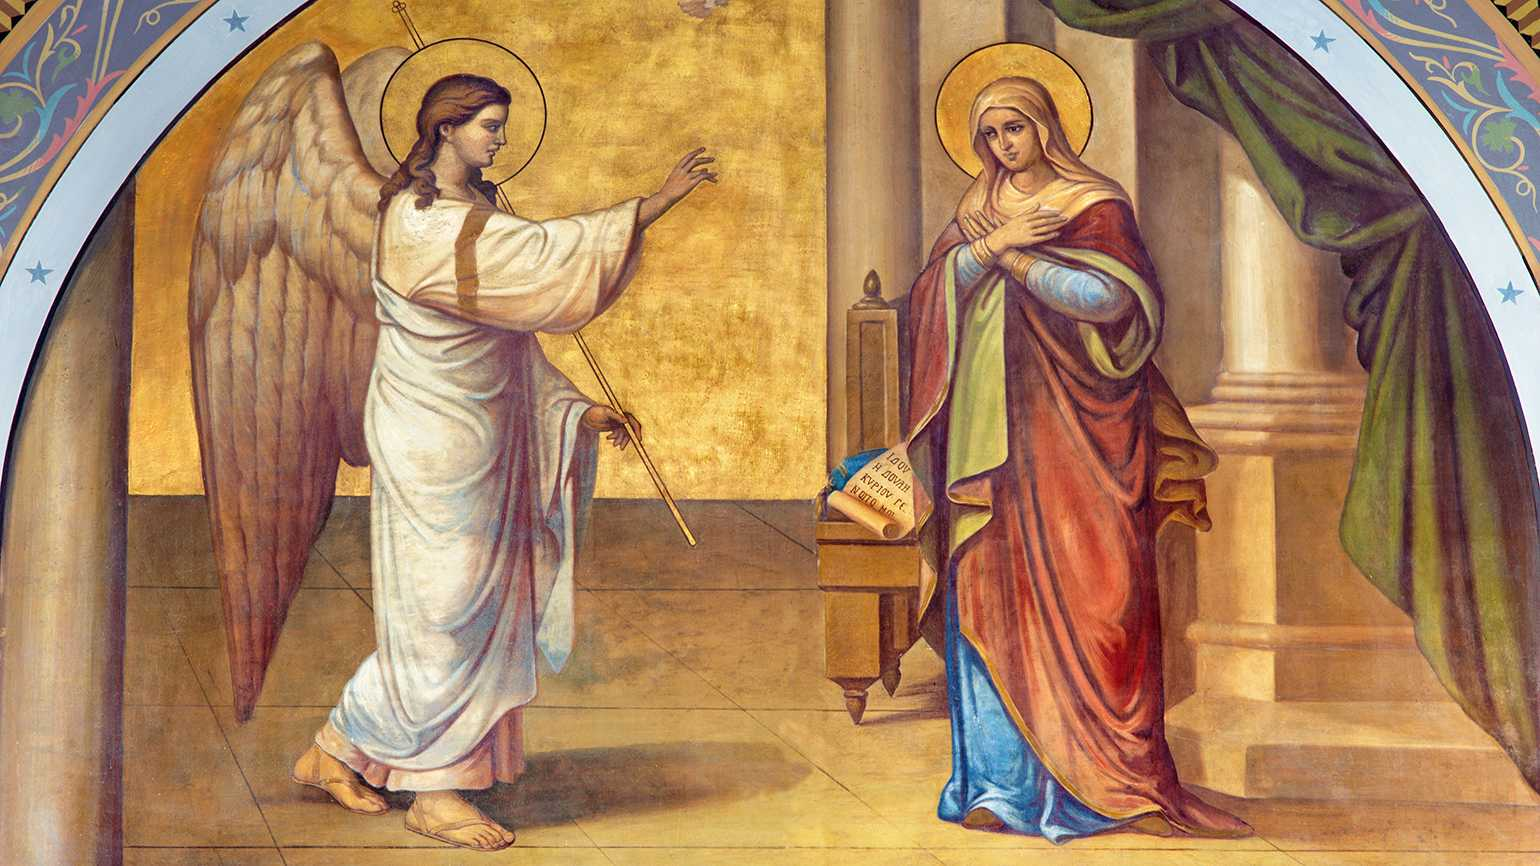 Athens - The fresco of Annunciation on the facade of Metropolitan Cathedral by B. Antoniasis